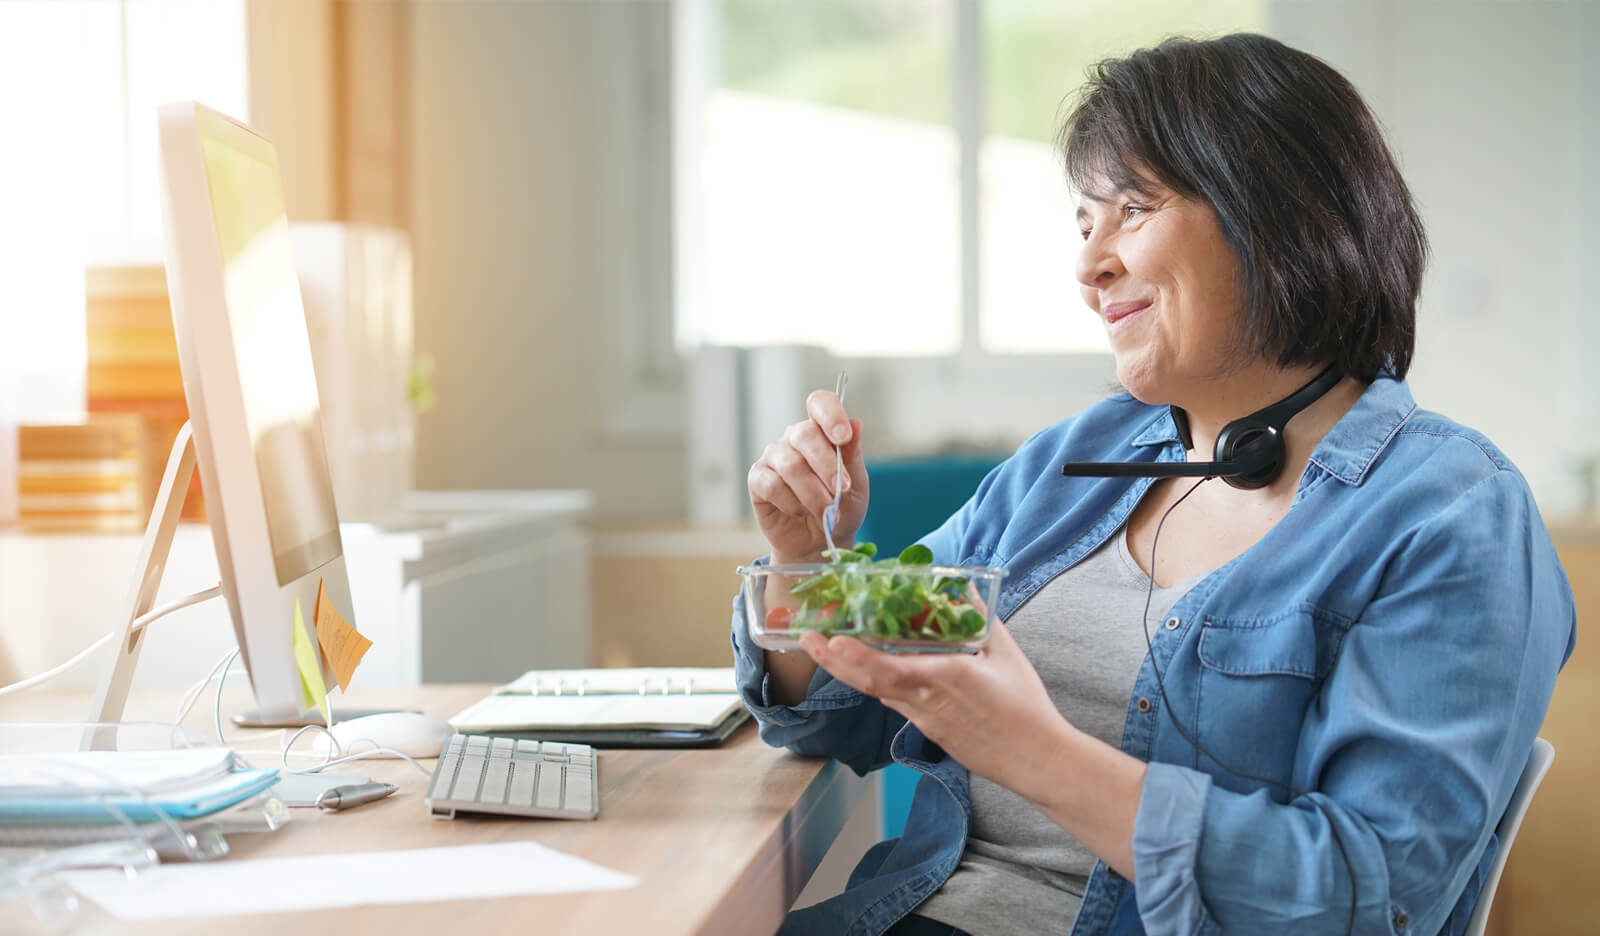 Woman eats a healthy lunch while chatting online with her weight-loss coach